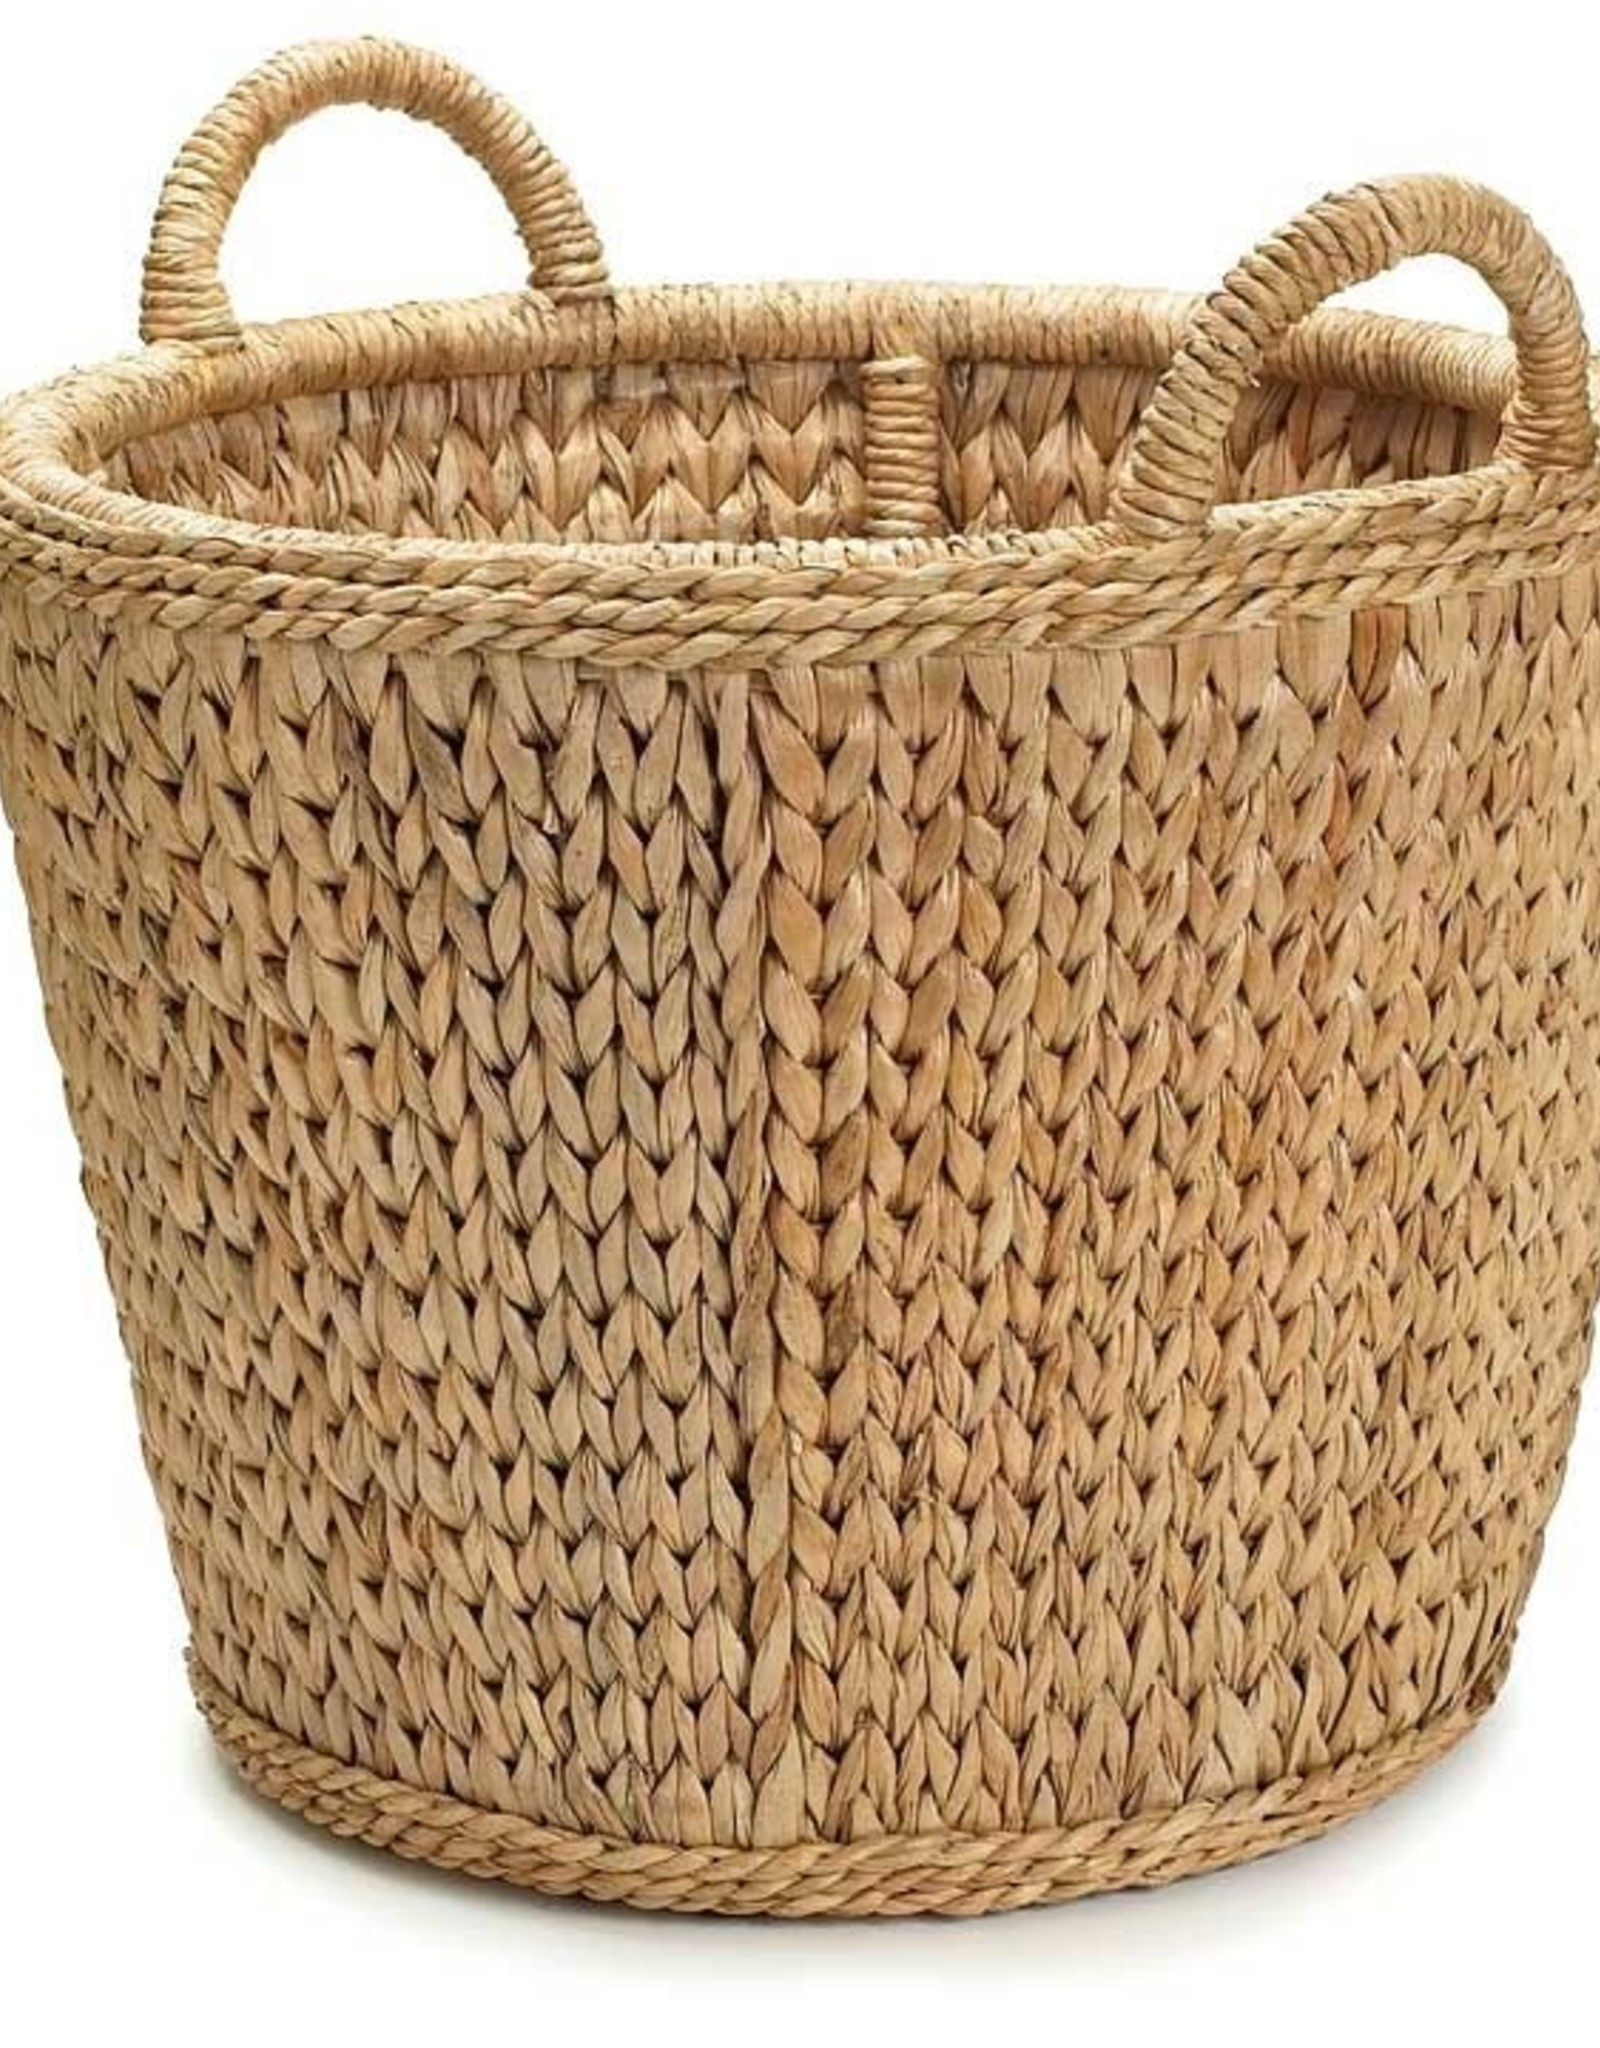 Mainly Baskets Sweater Weave Log Basket